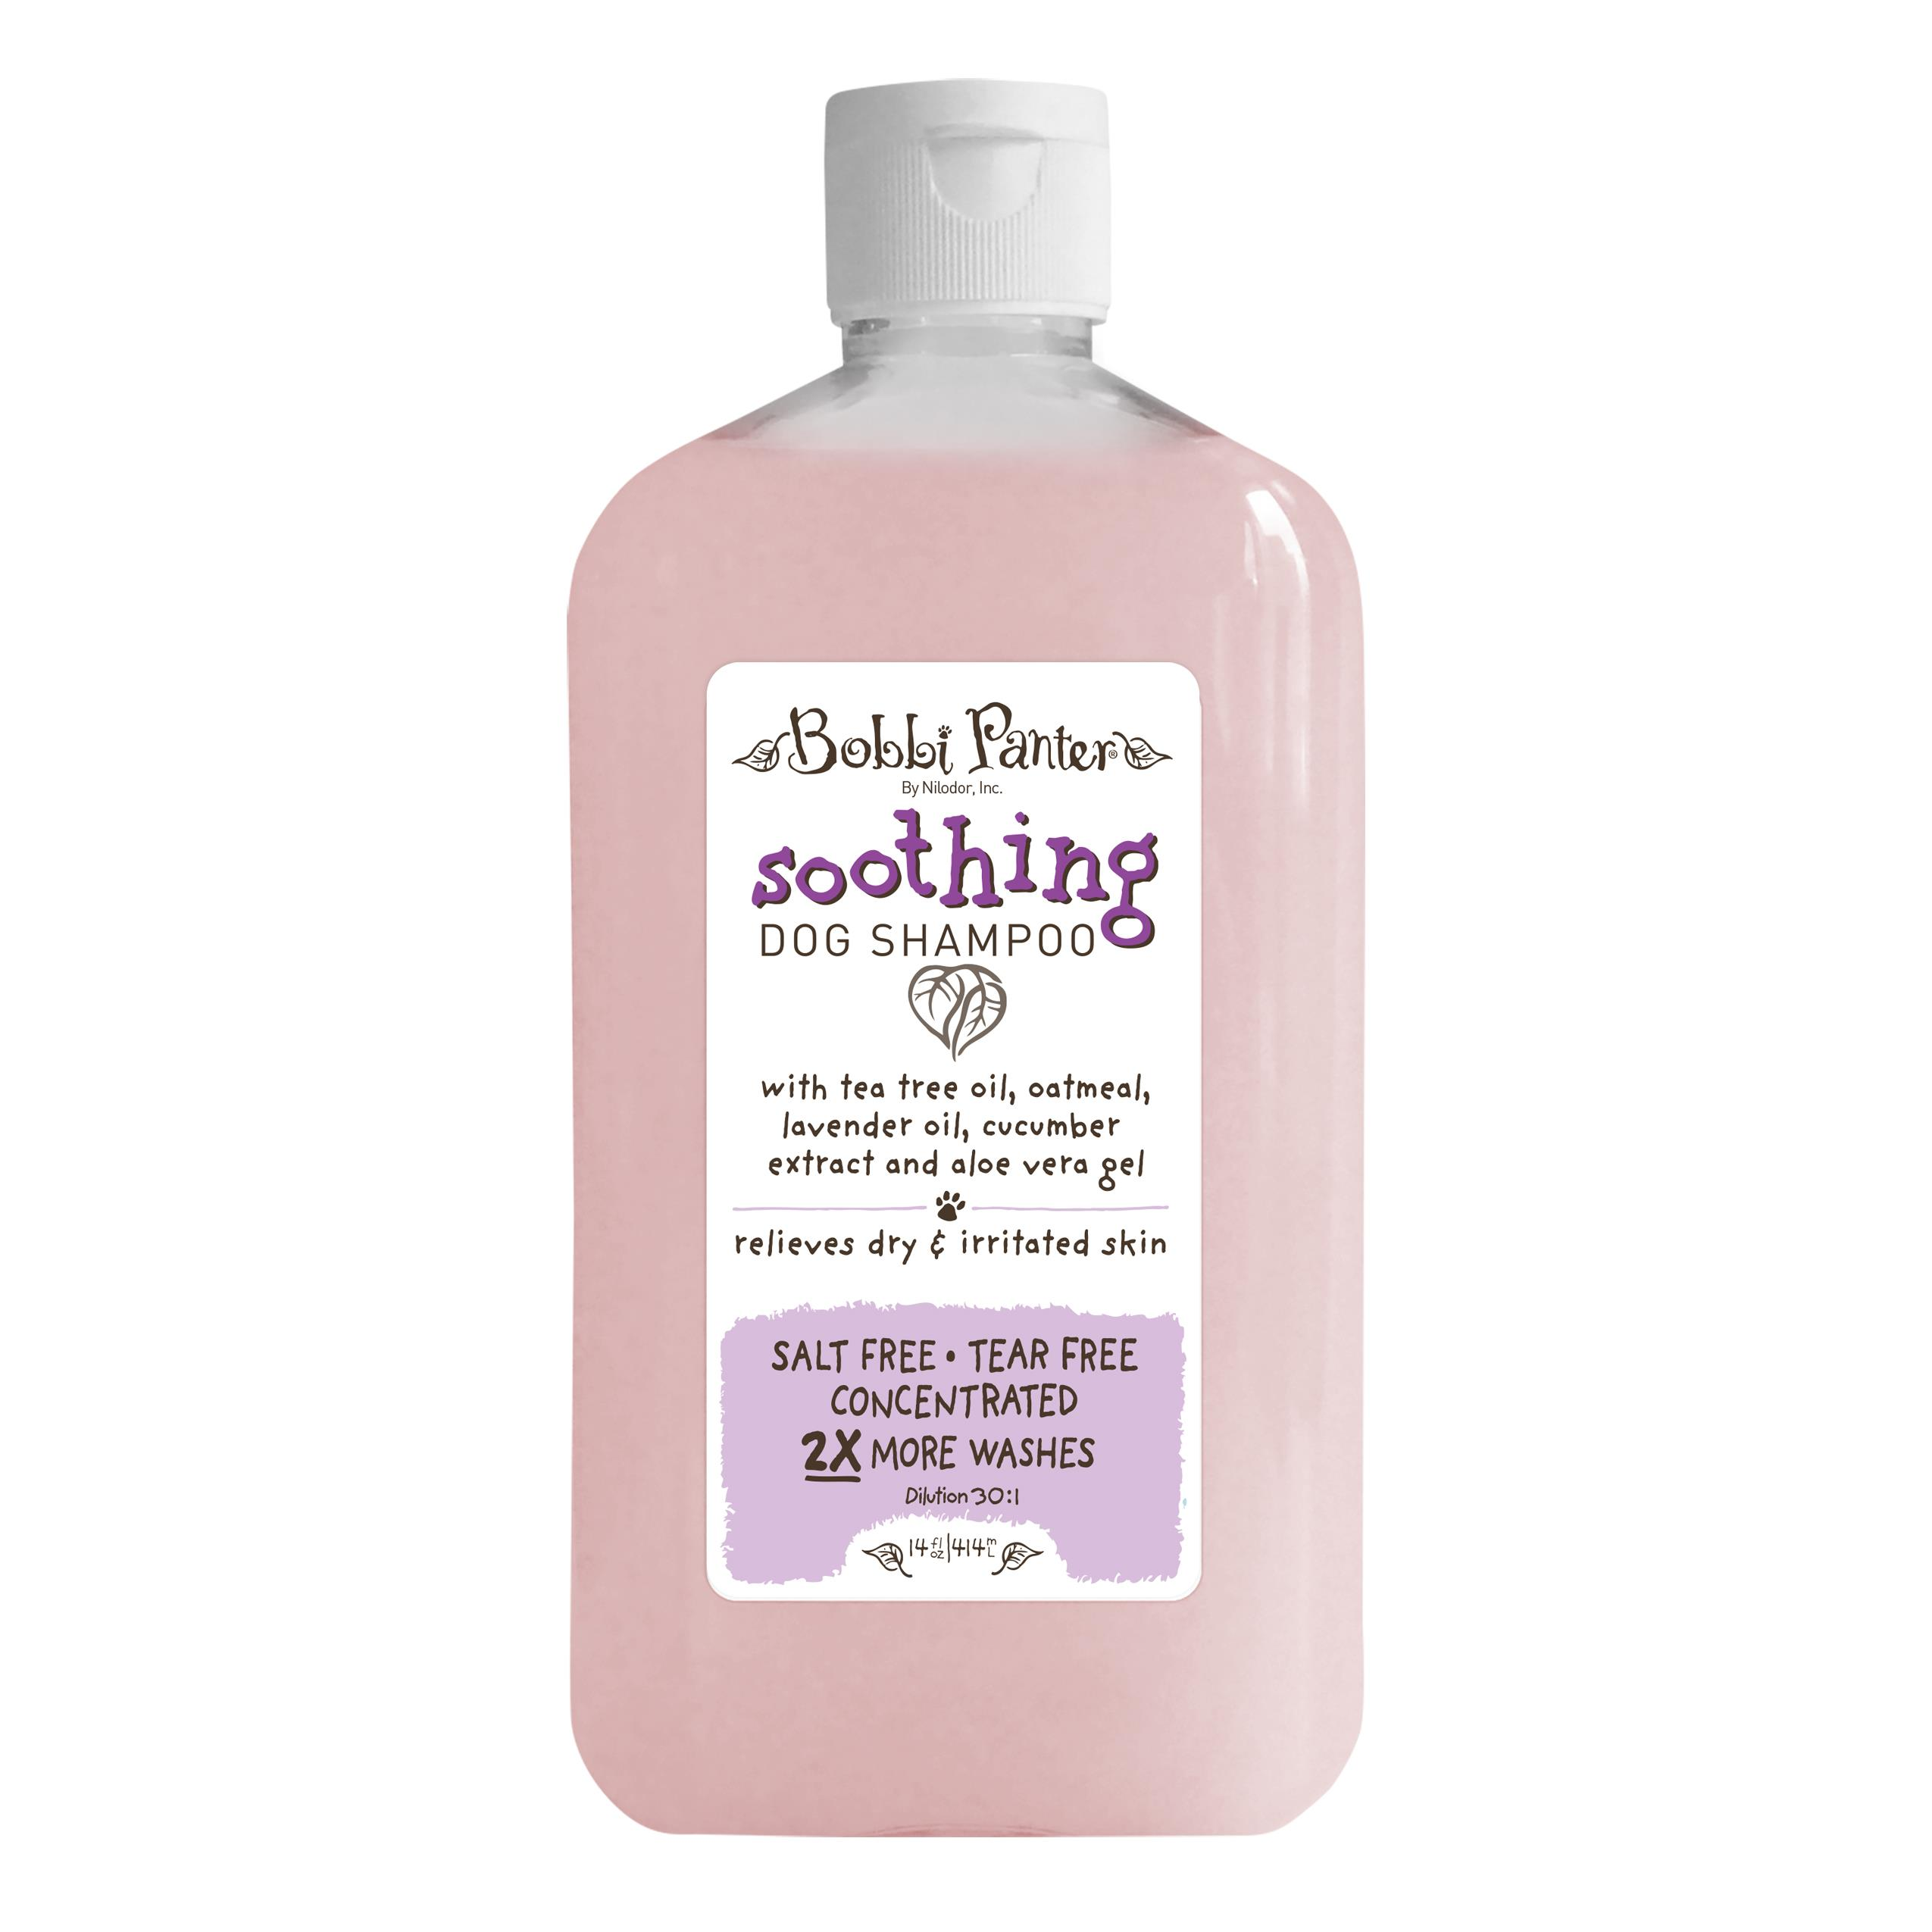 Bobbi Panter Soothing Dog Shampoo